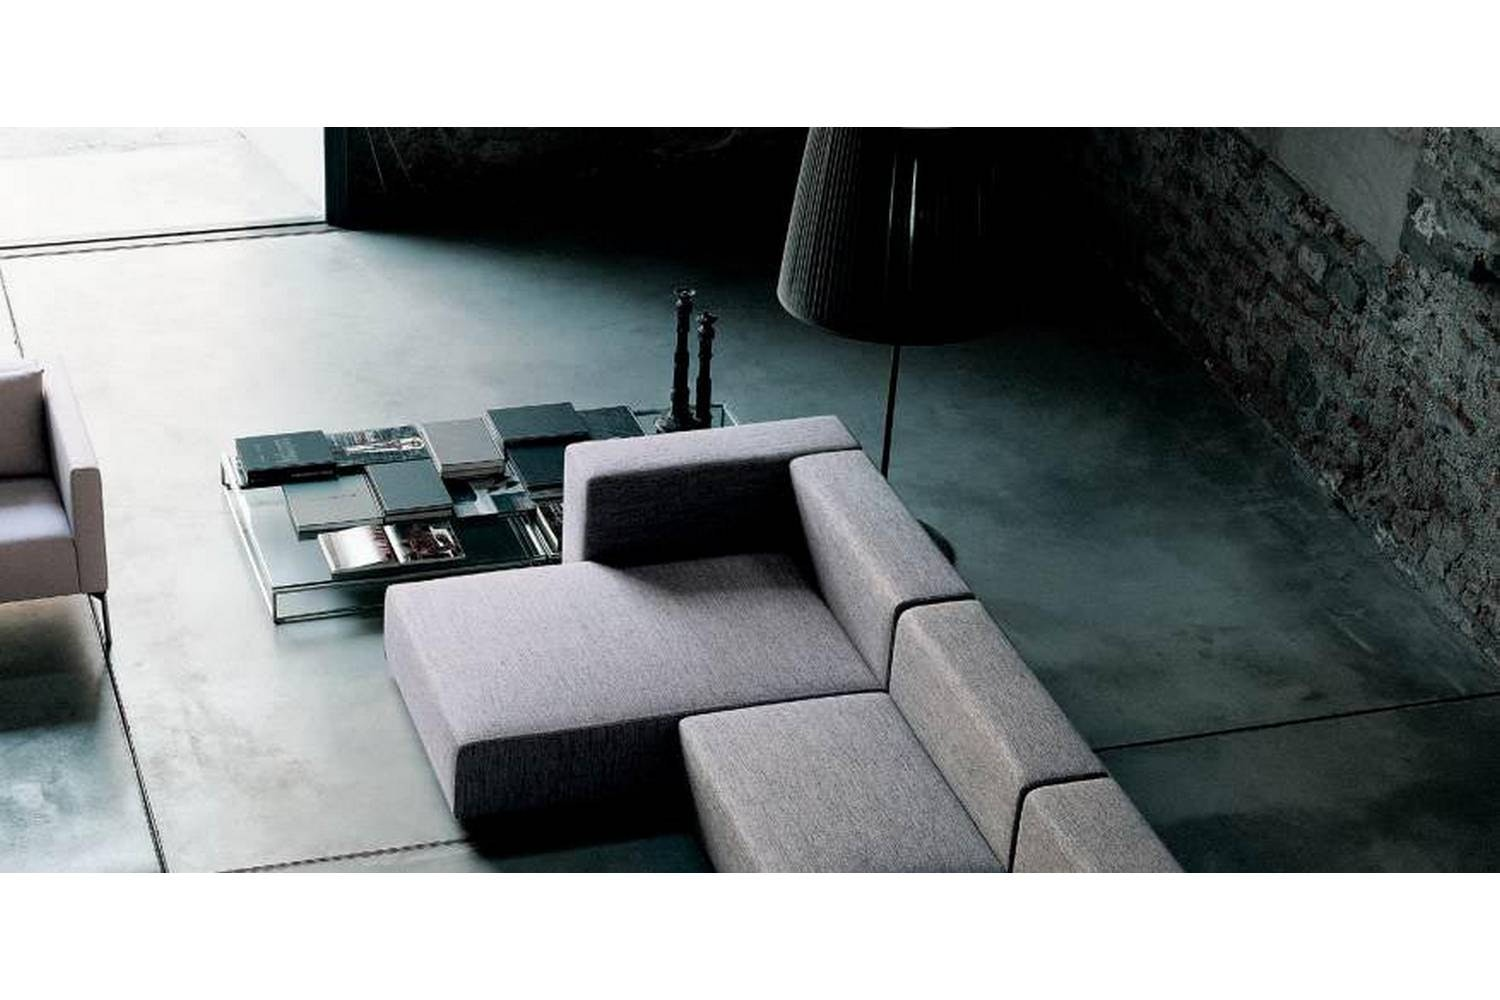 Wall.2 Table by Piero Lissoni for Living Divani